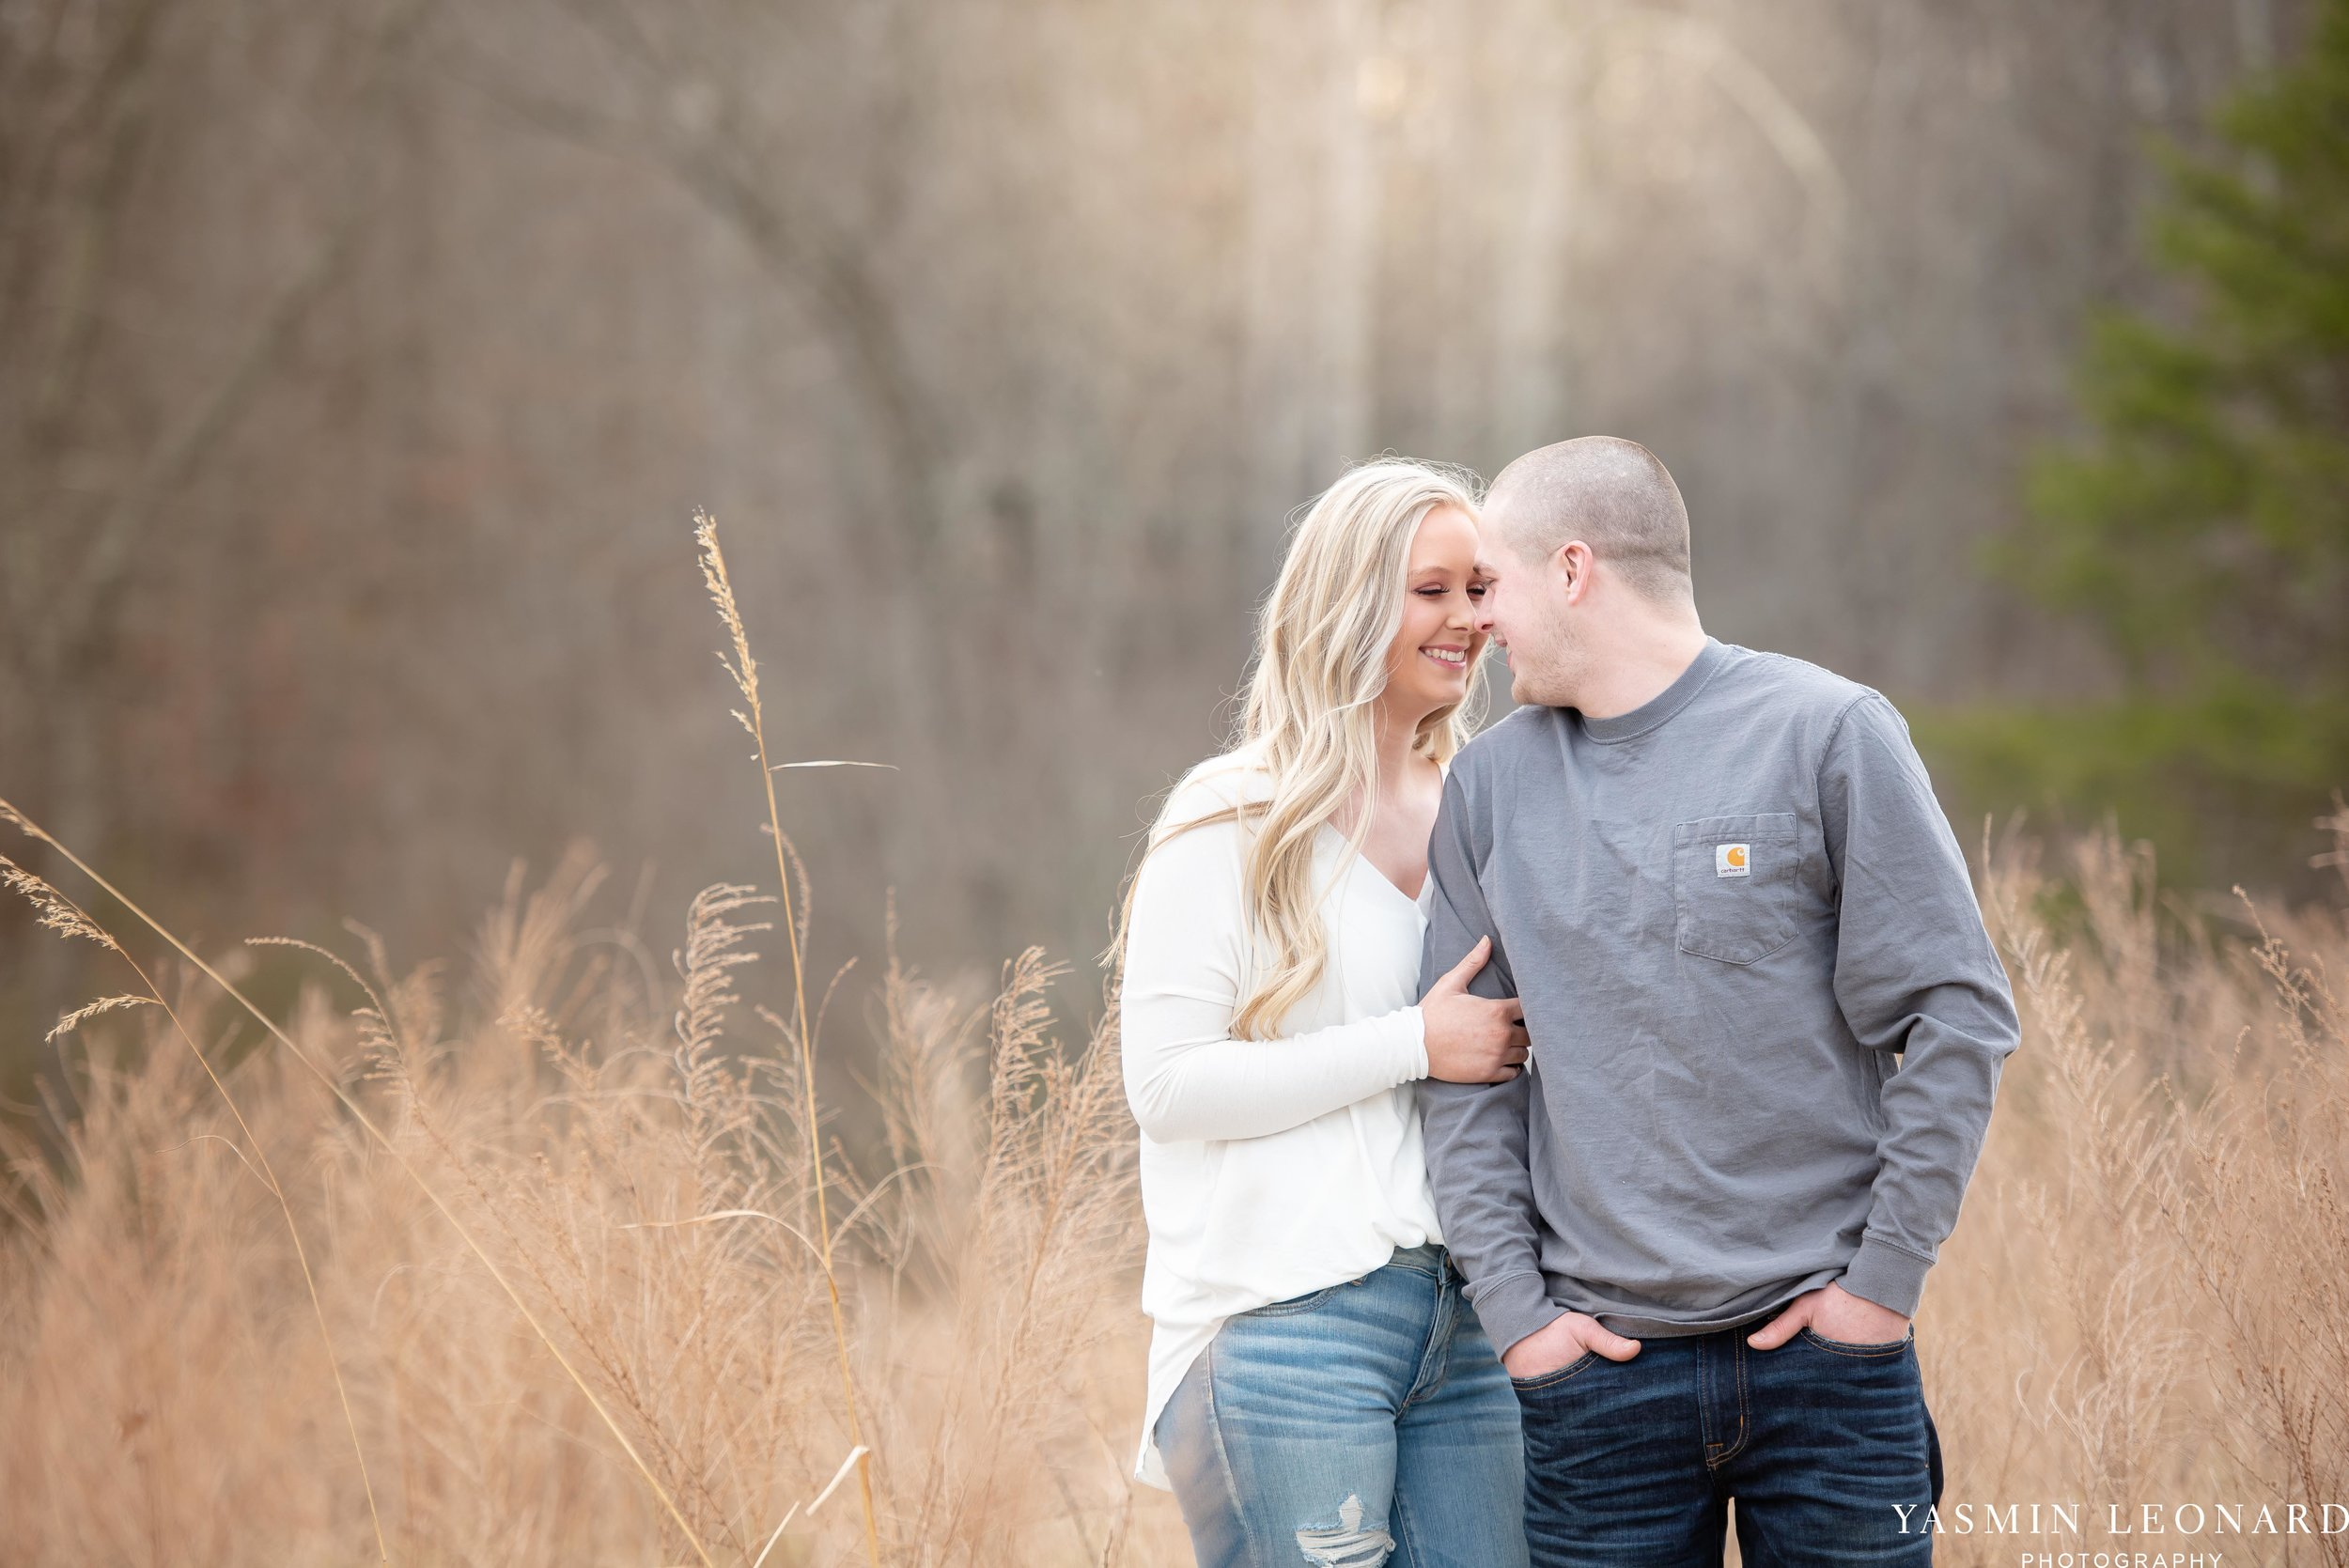 Luna Trail Engagement Session - NC Barns - NC Venues - NC Photographer - NC Country Wedding - Engagement Session Ideas - Engagement Photos - E-Session Photos - Yasmin Leonard Photography-1.jpg